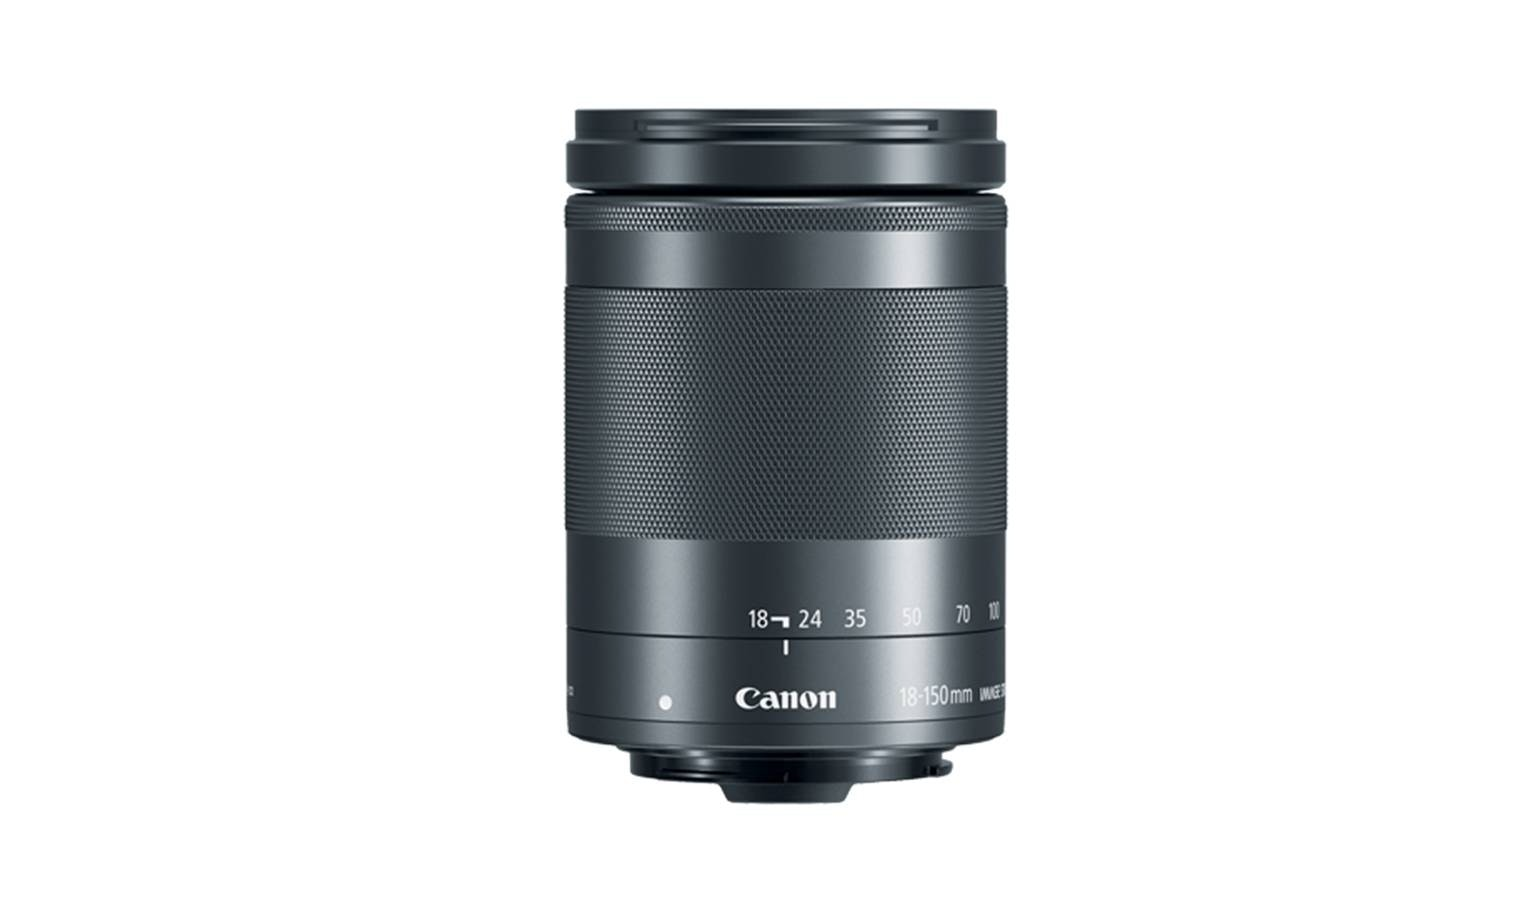 Canon EF-M 18-150 f/3.5-6.3 IS STM Lens (Overview)